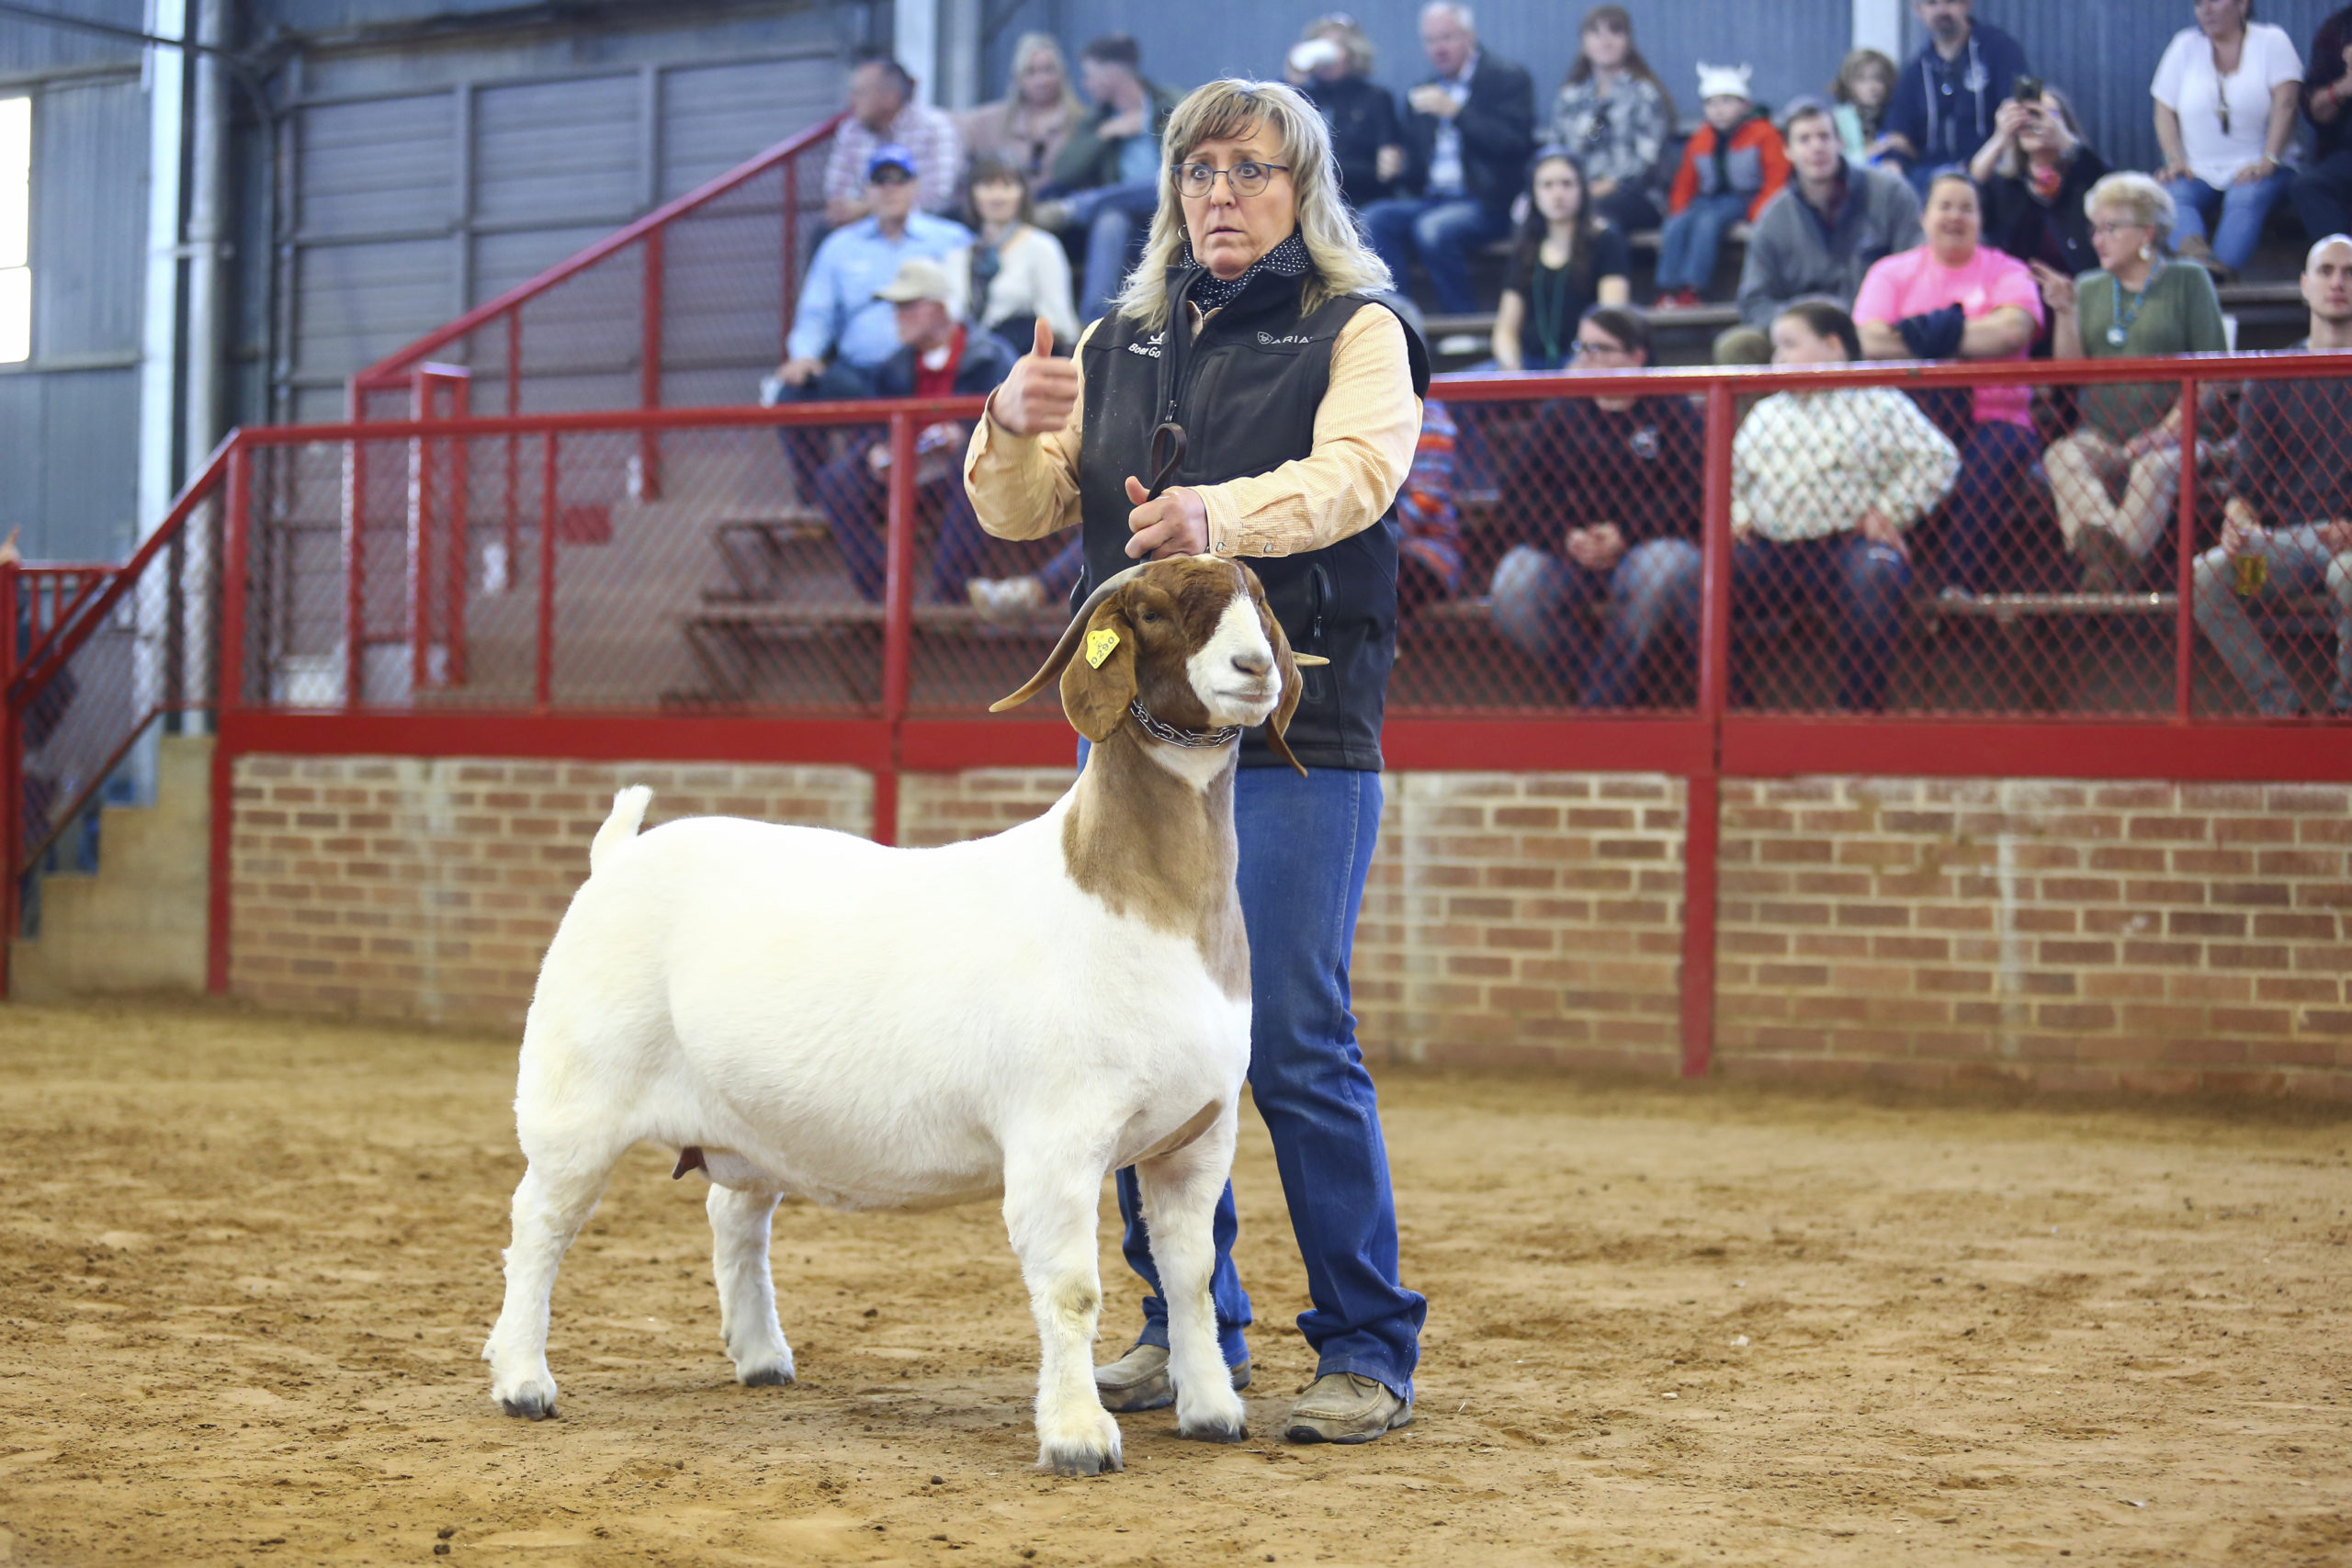 White Boer Goat in the Ring with the Judge